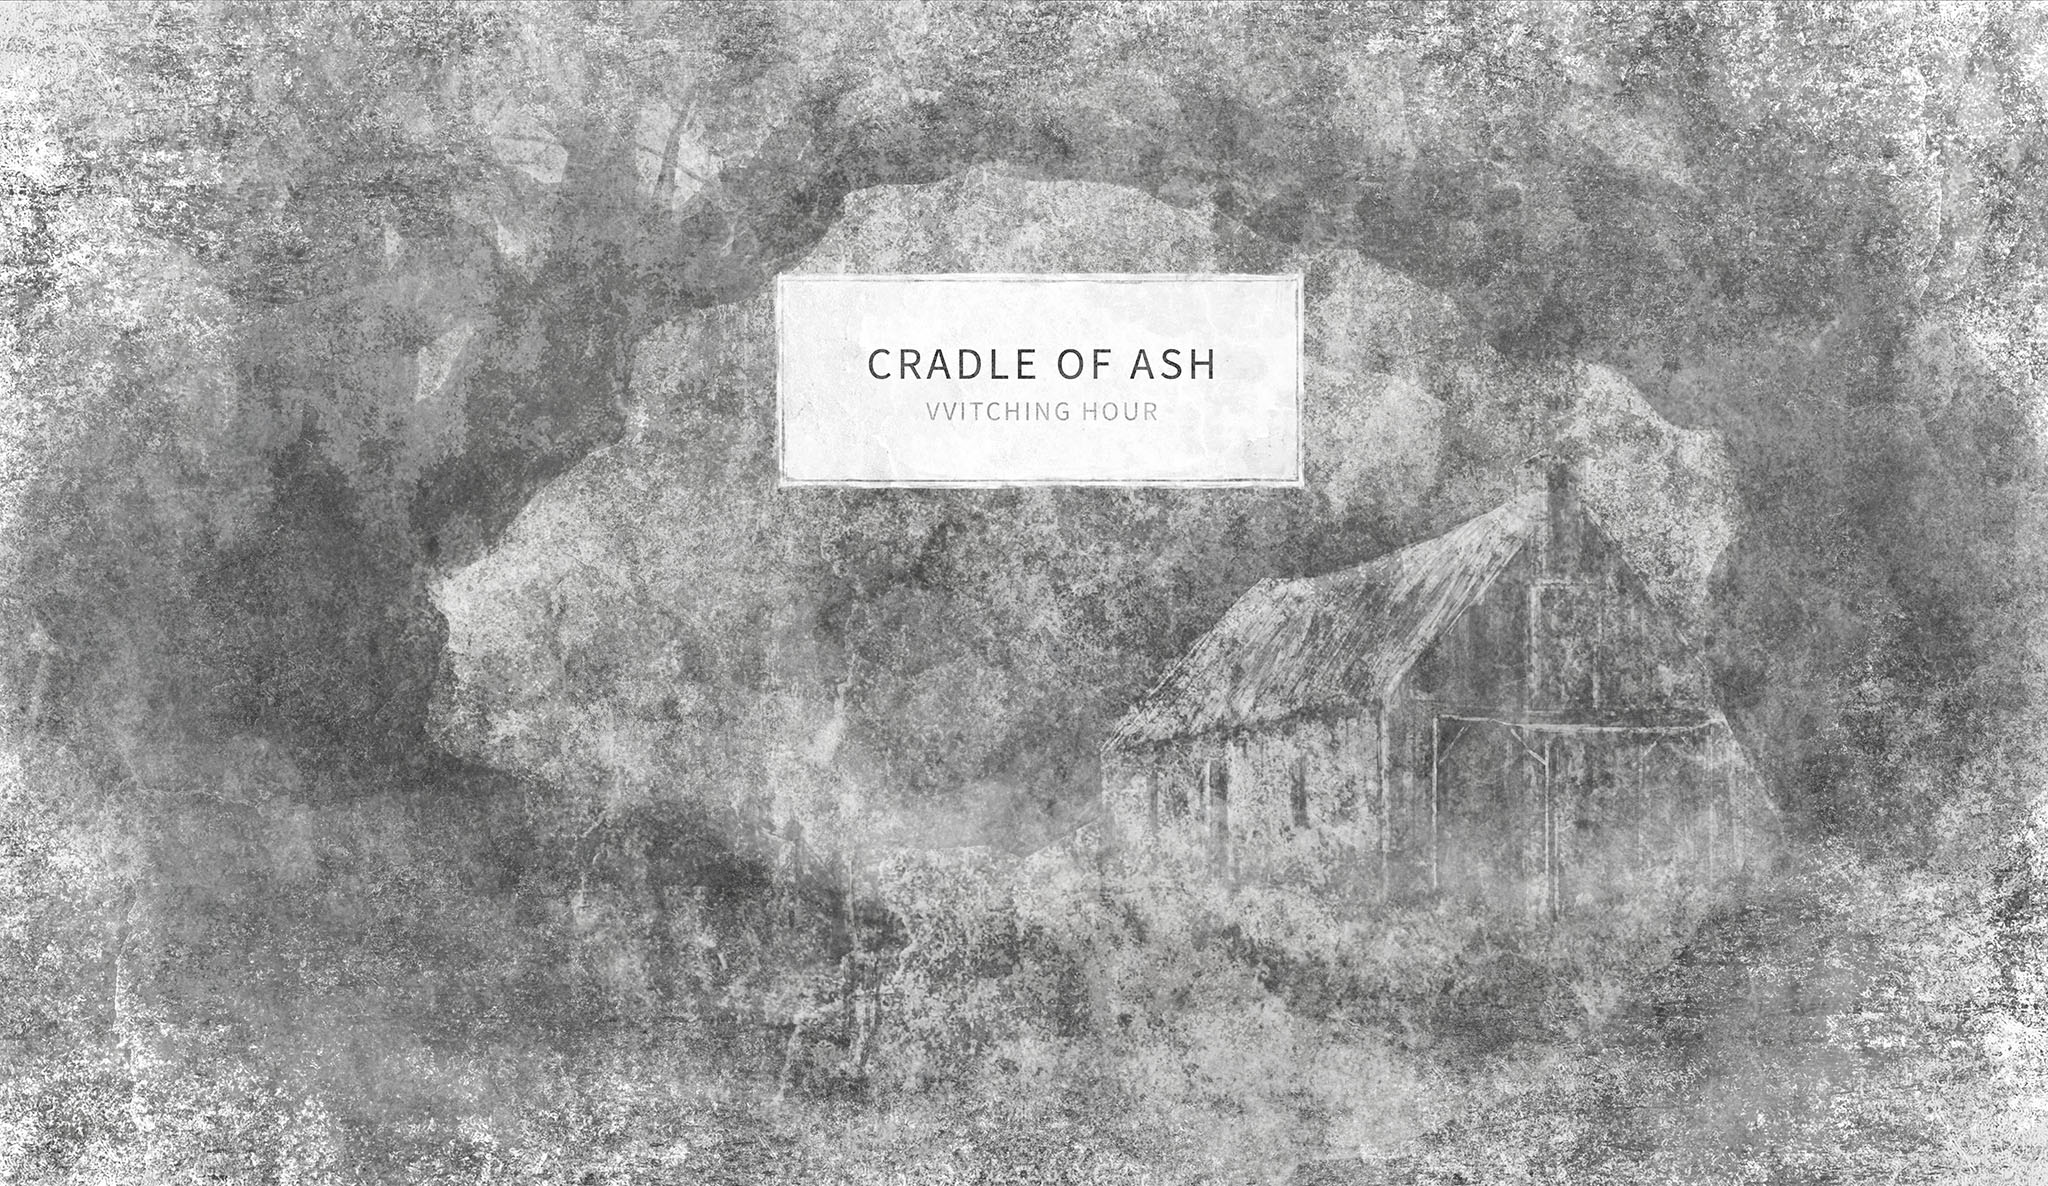 VVitching Hour: Cradle of Ash